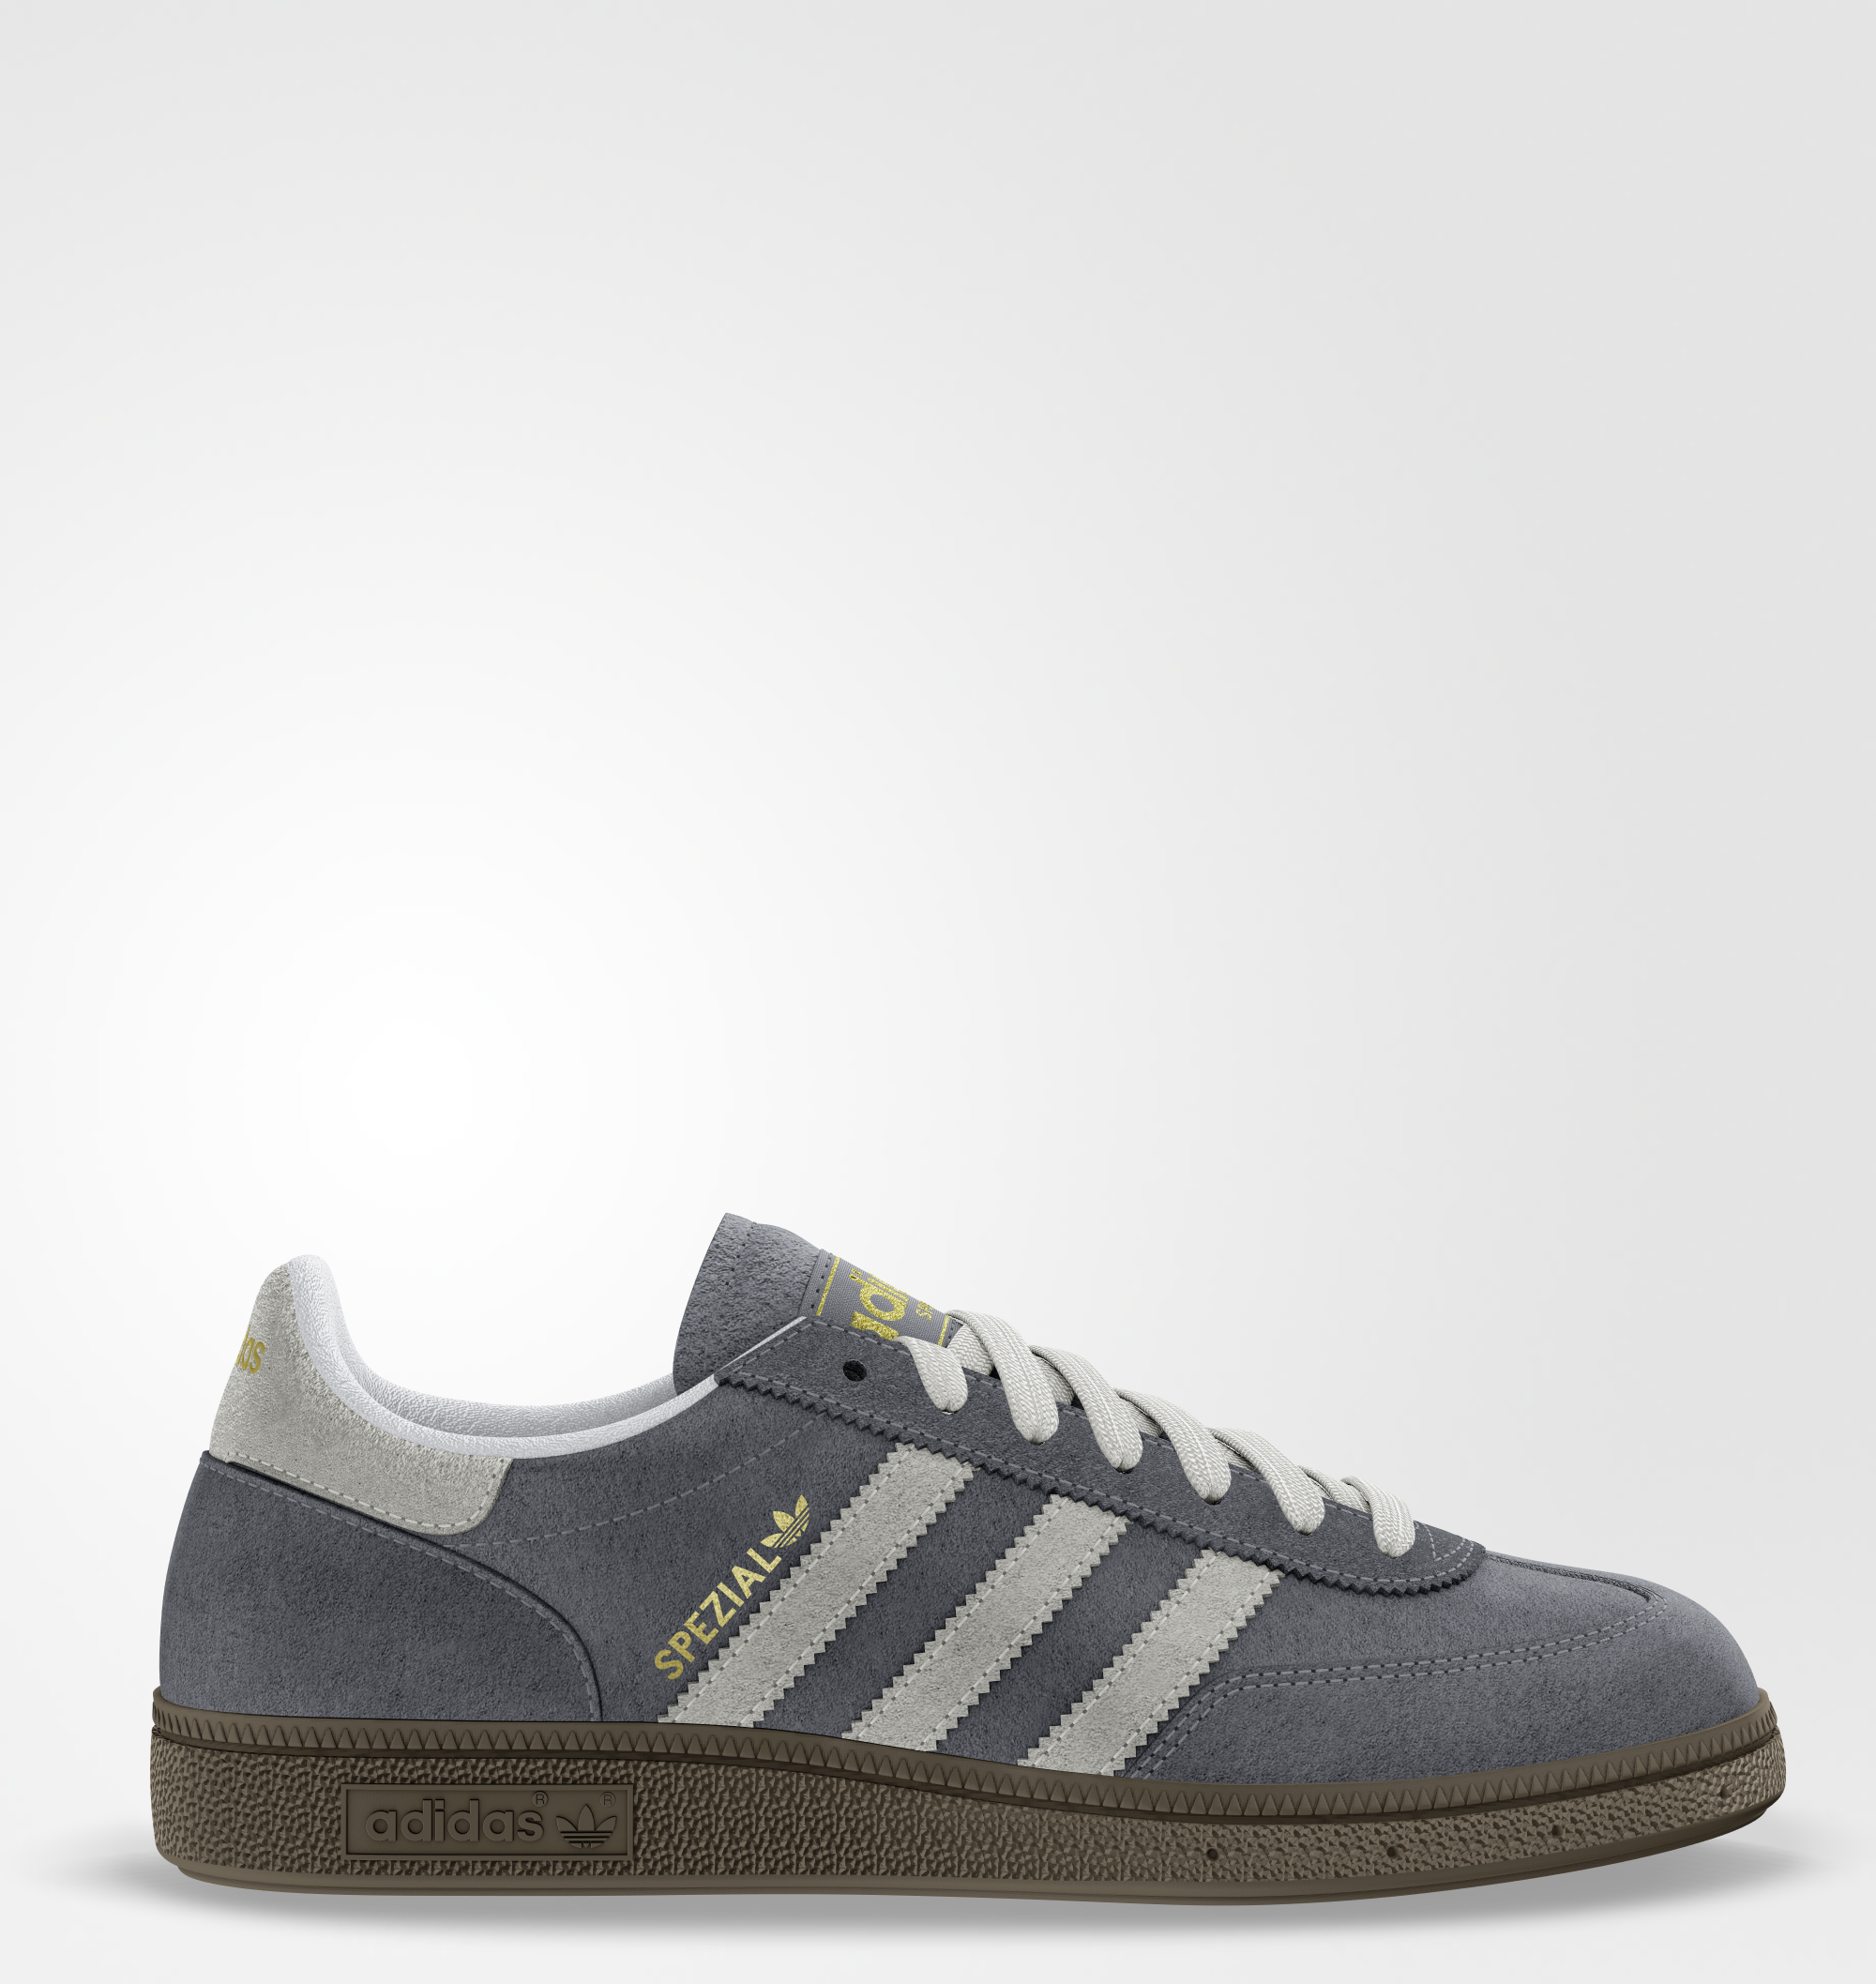 Spezial Shoes | adidas US